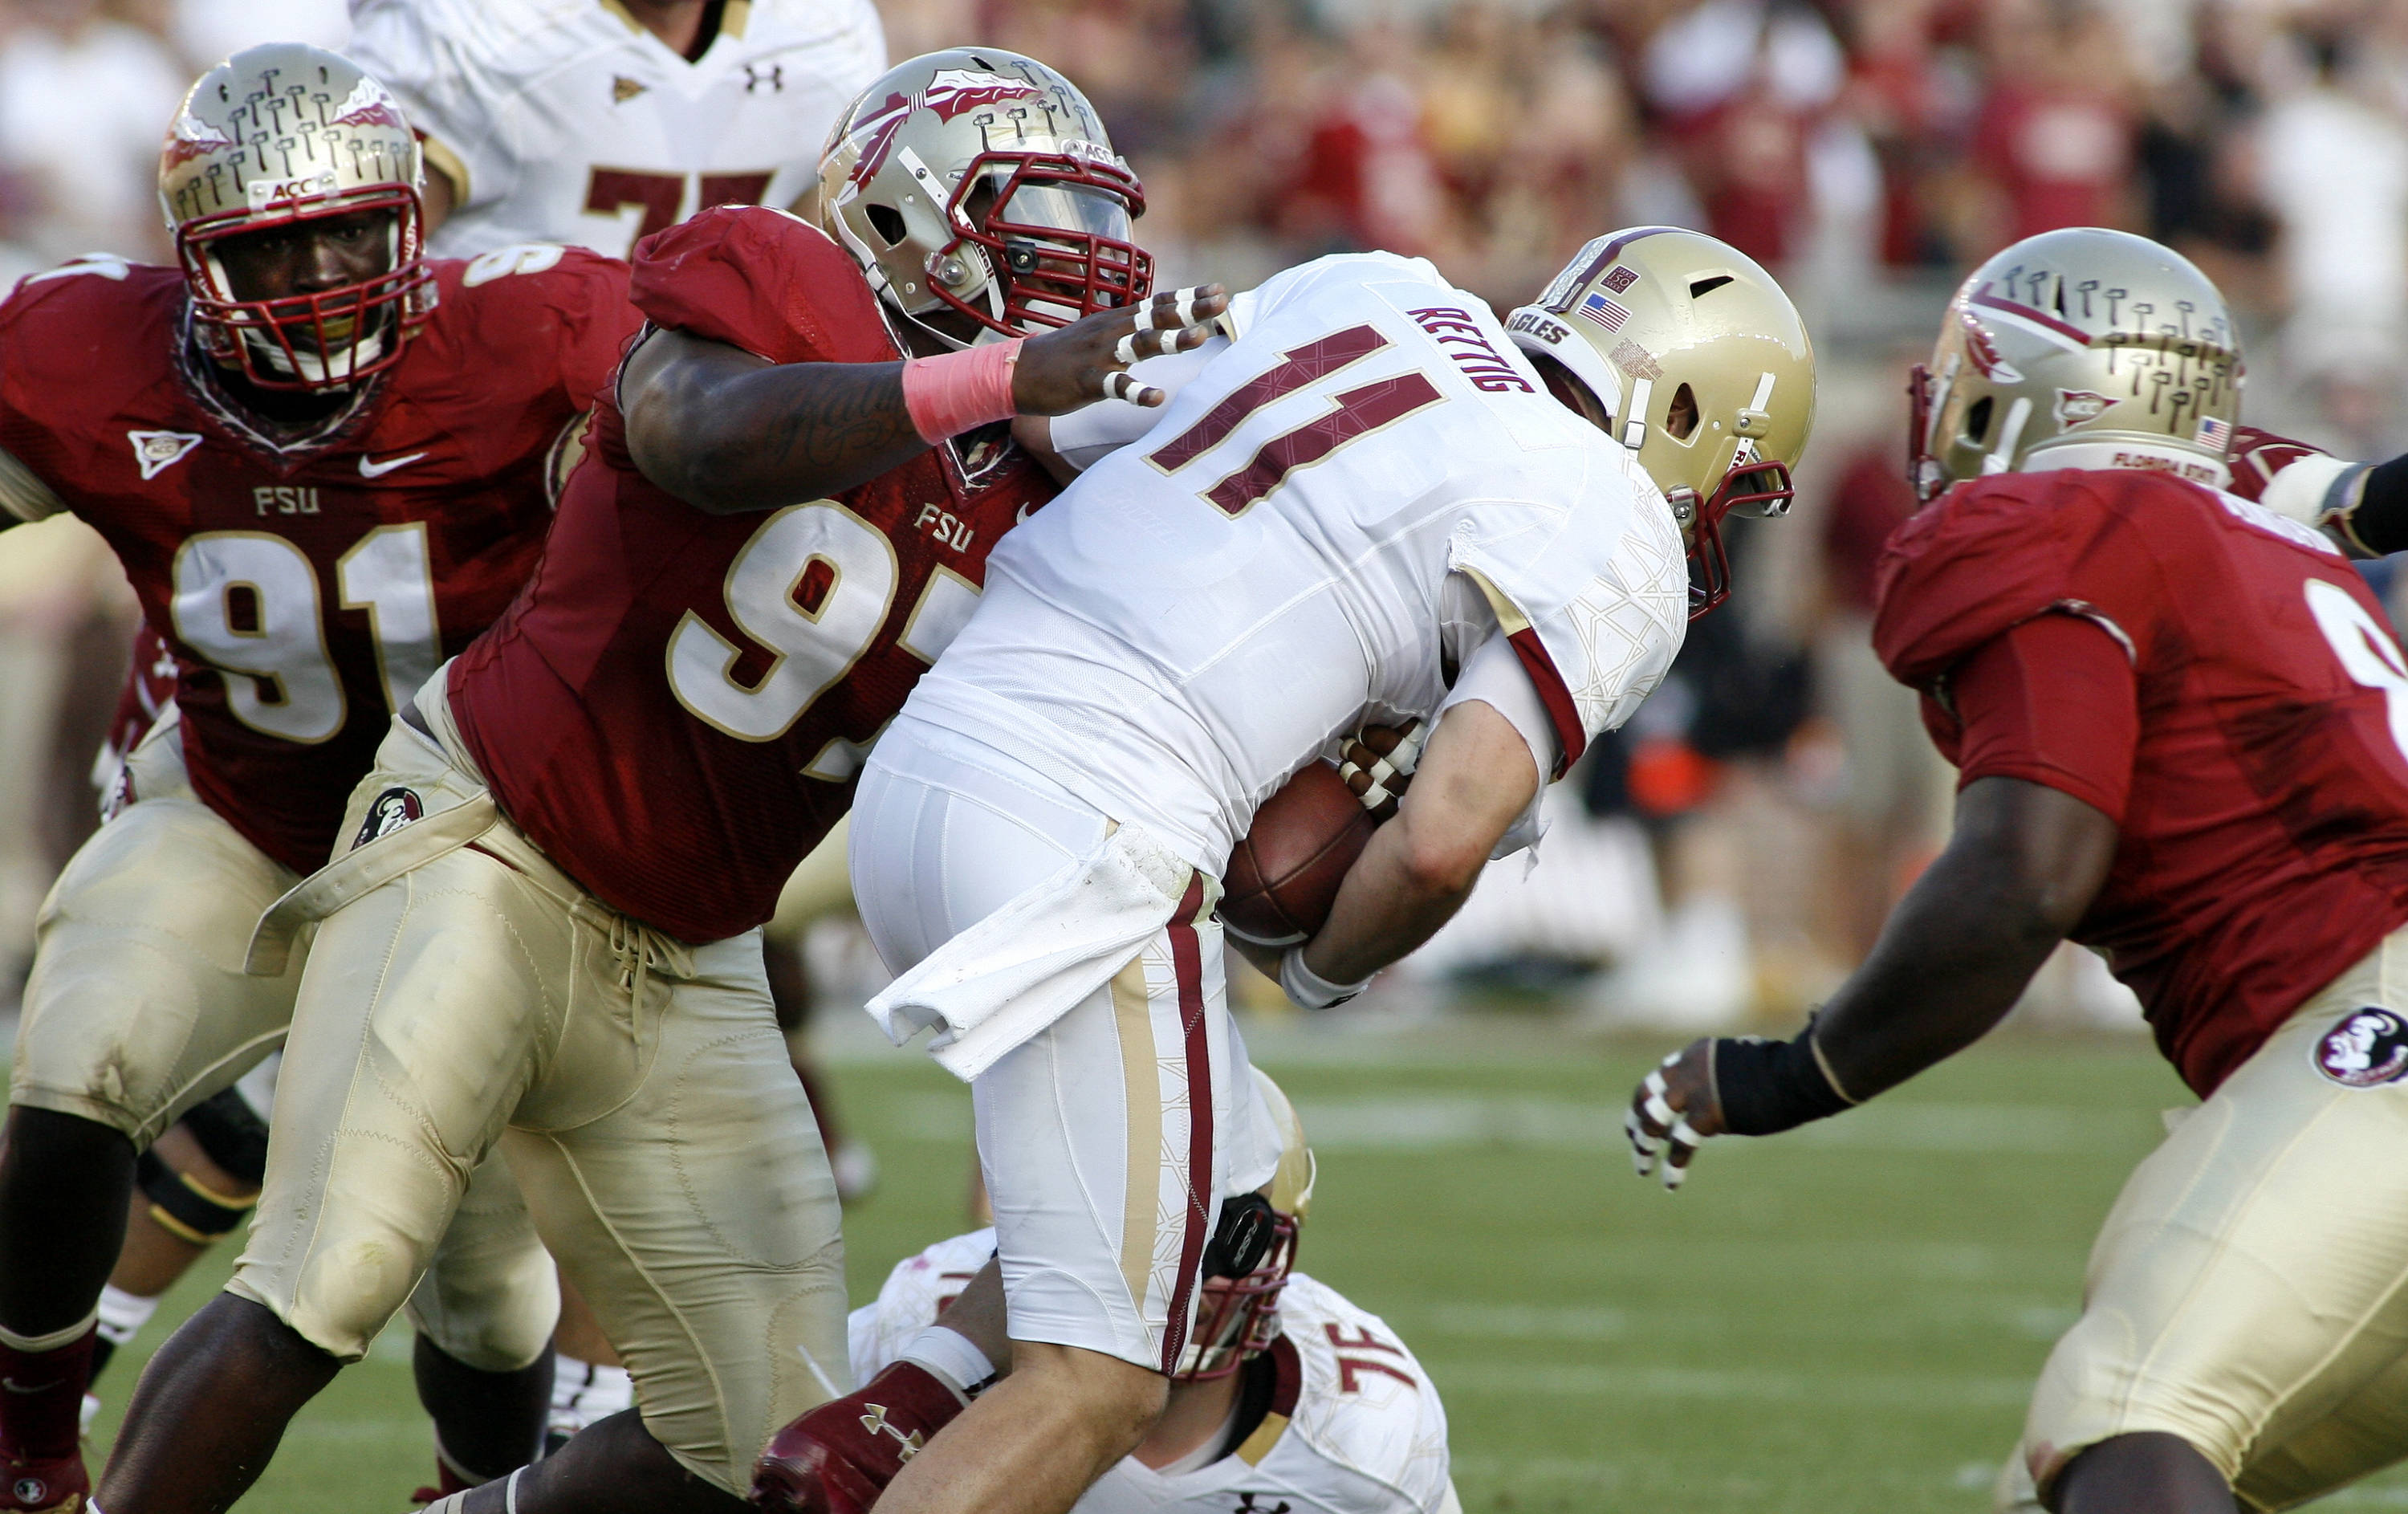 Florida State defensive tackle Demonte McAllister (97) and defensive tackle Timmy Jernigan, right, sack Boston College quarterback Chase Rettig (11) in the first quarter. (AP Photo/Phil Sears)